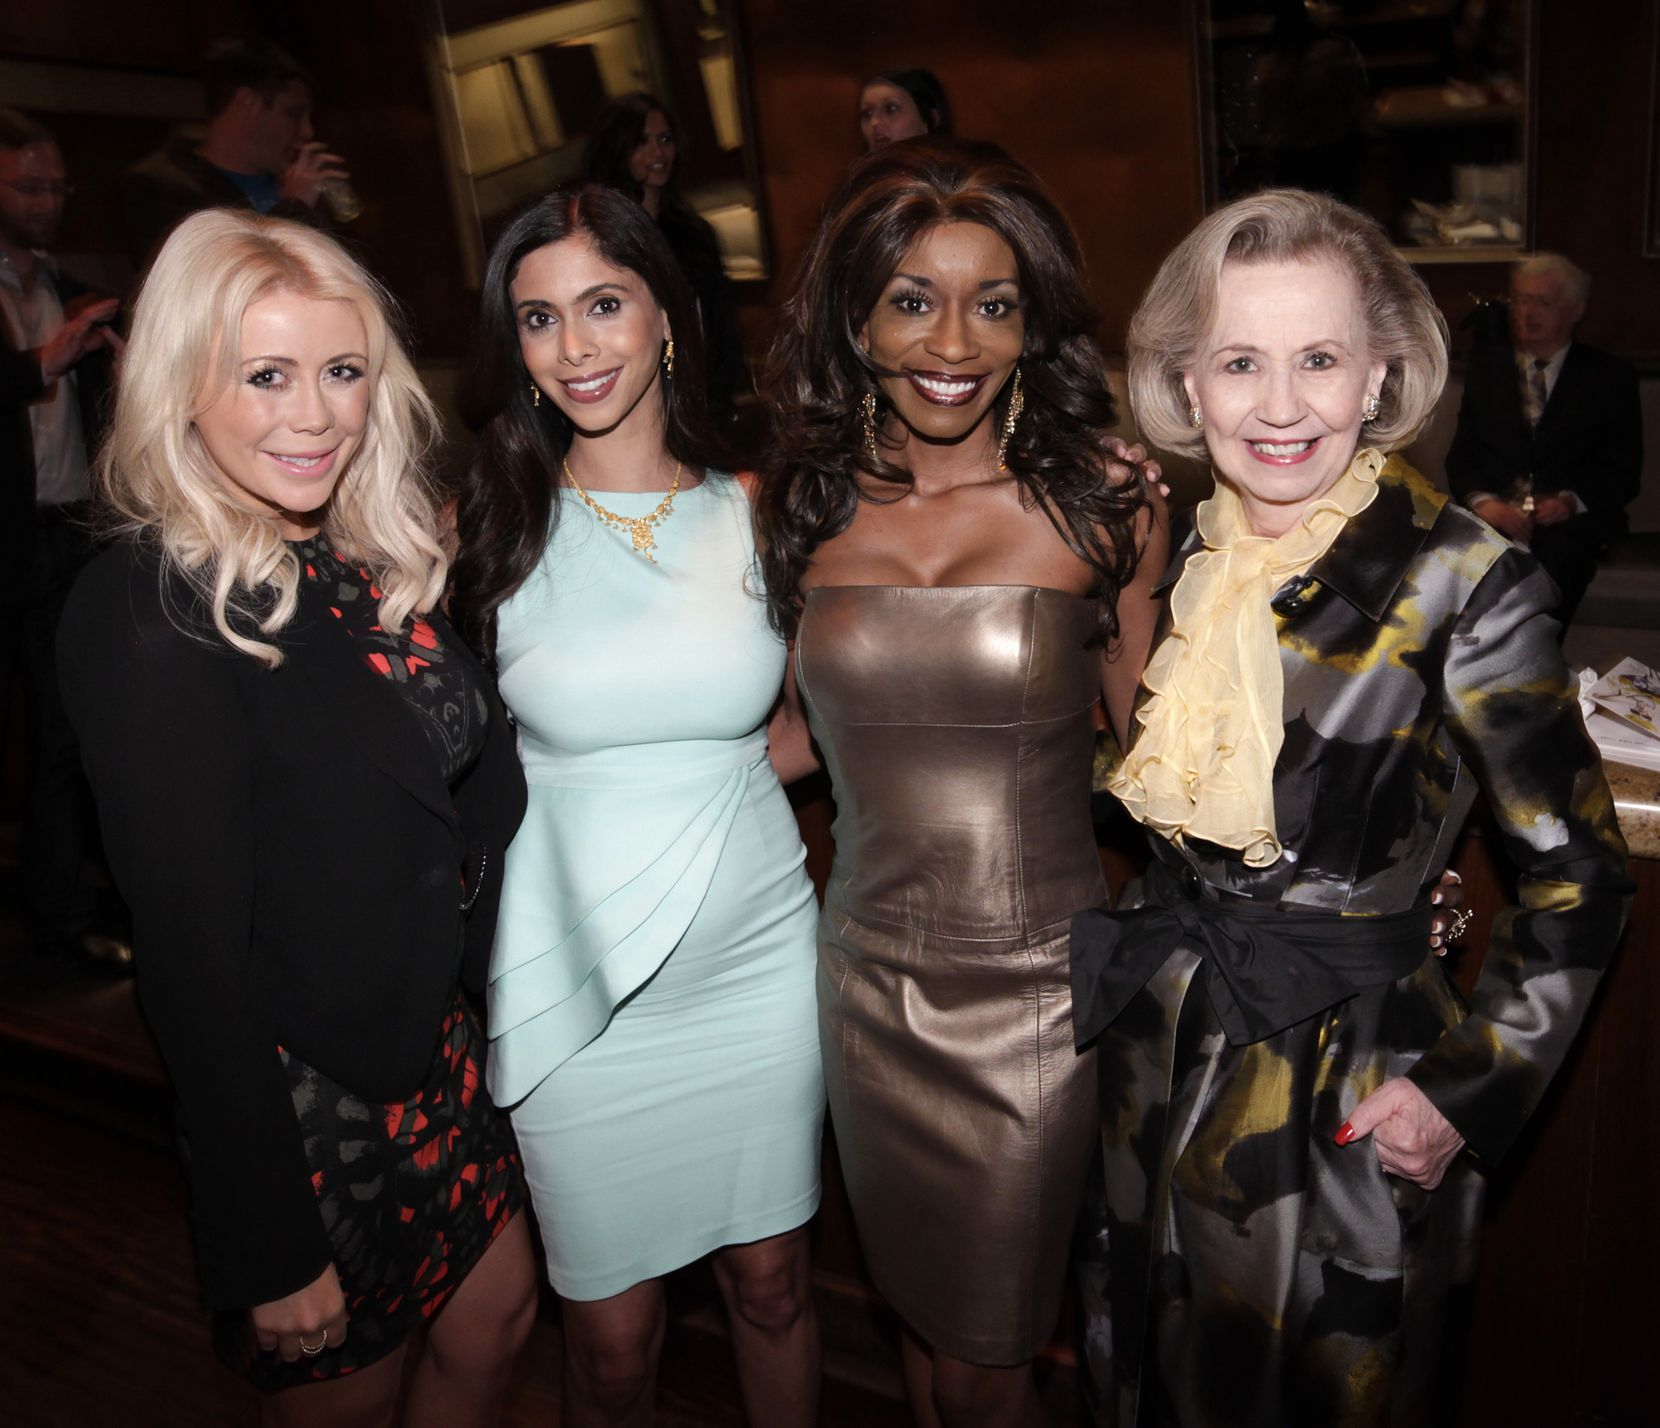 Paige Hardison (from left), Priya Rathod, Nicole Barrett and Yvonne Crumb were photographed during the Fresh Faces of Fashion raffle party at Candleroom in Dallas, Texas, on Feb. 22, 2013.